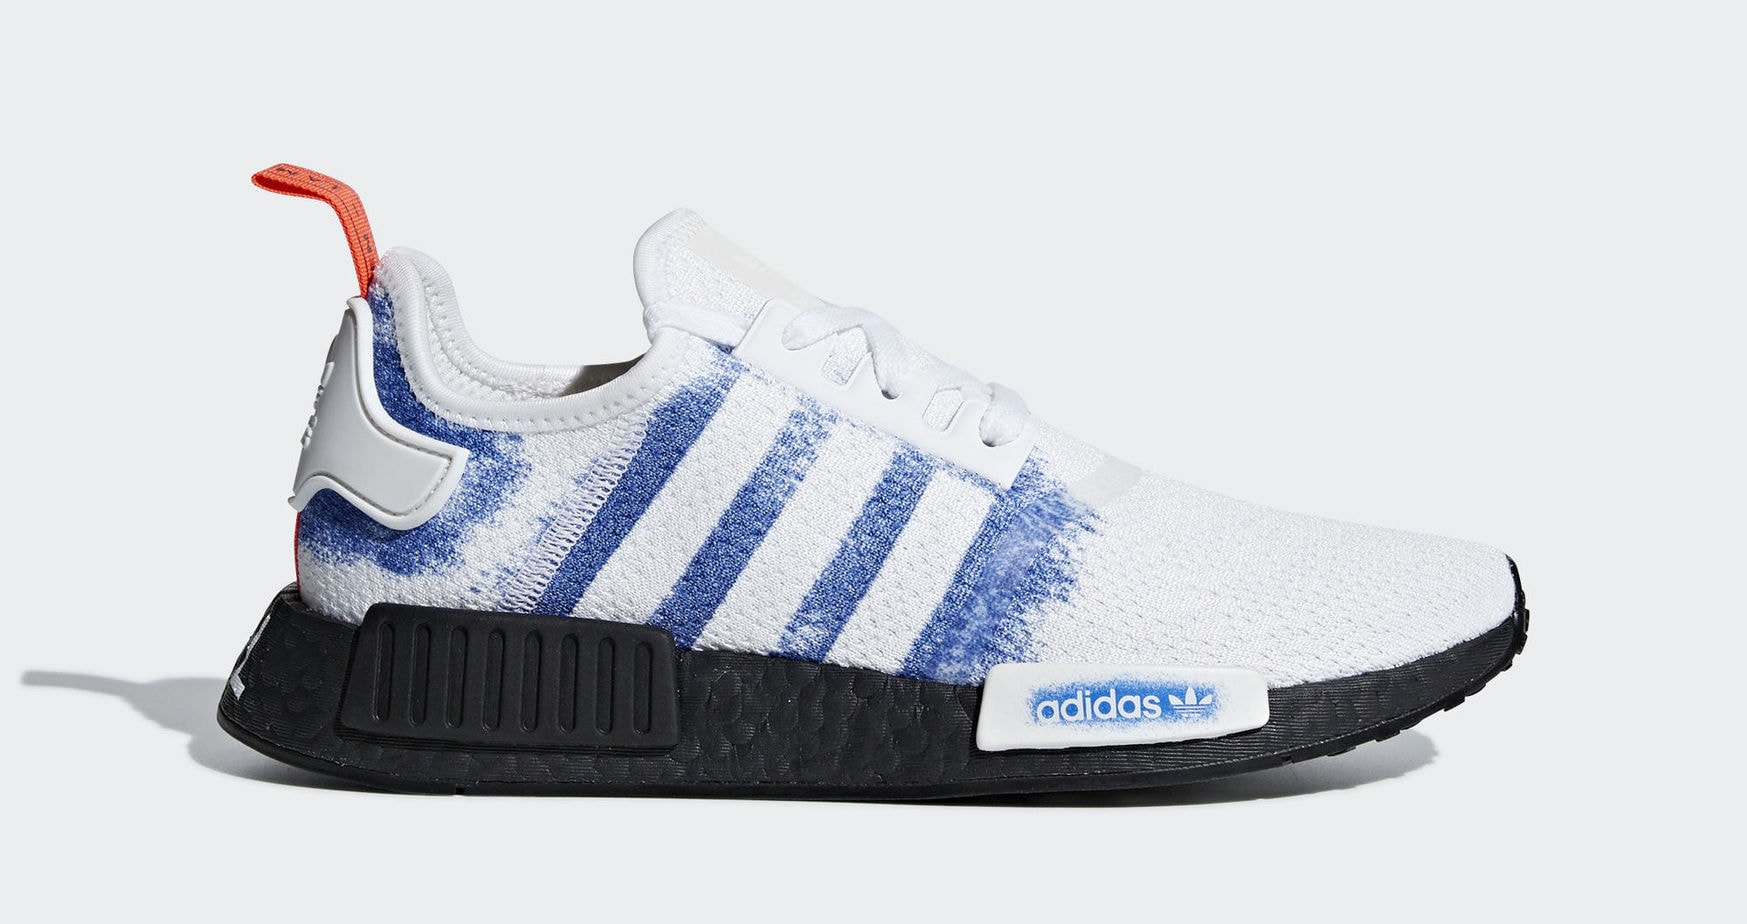 472b4ba29 ... adidas nmd r1 printed atl ftwr white bold blue core black october 13  2018